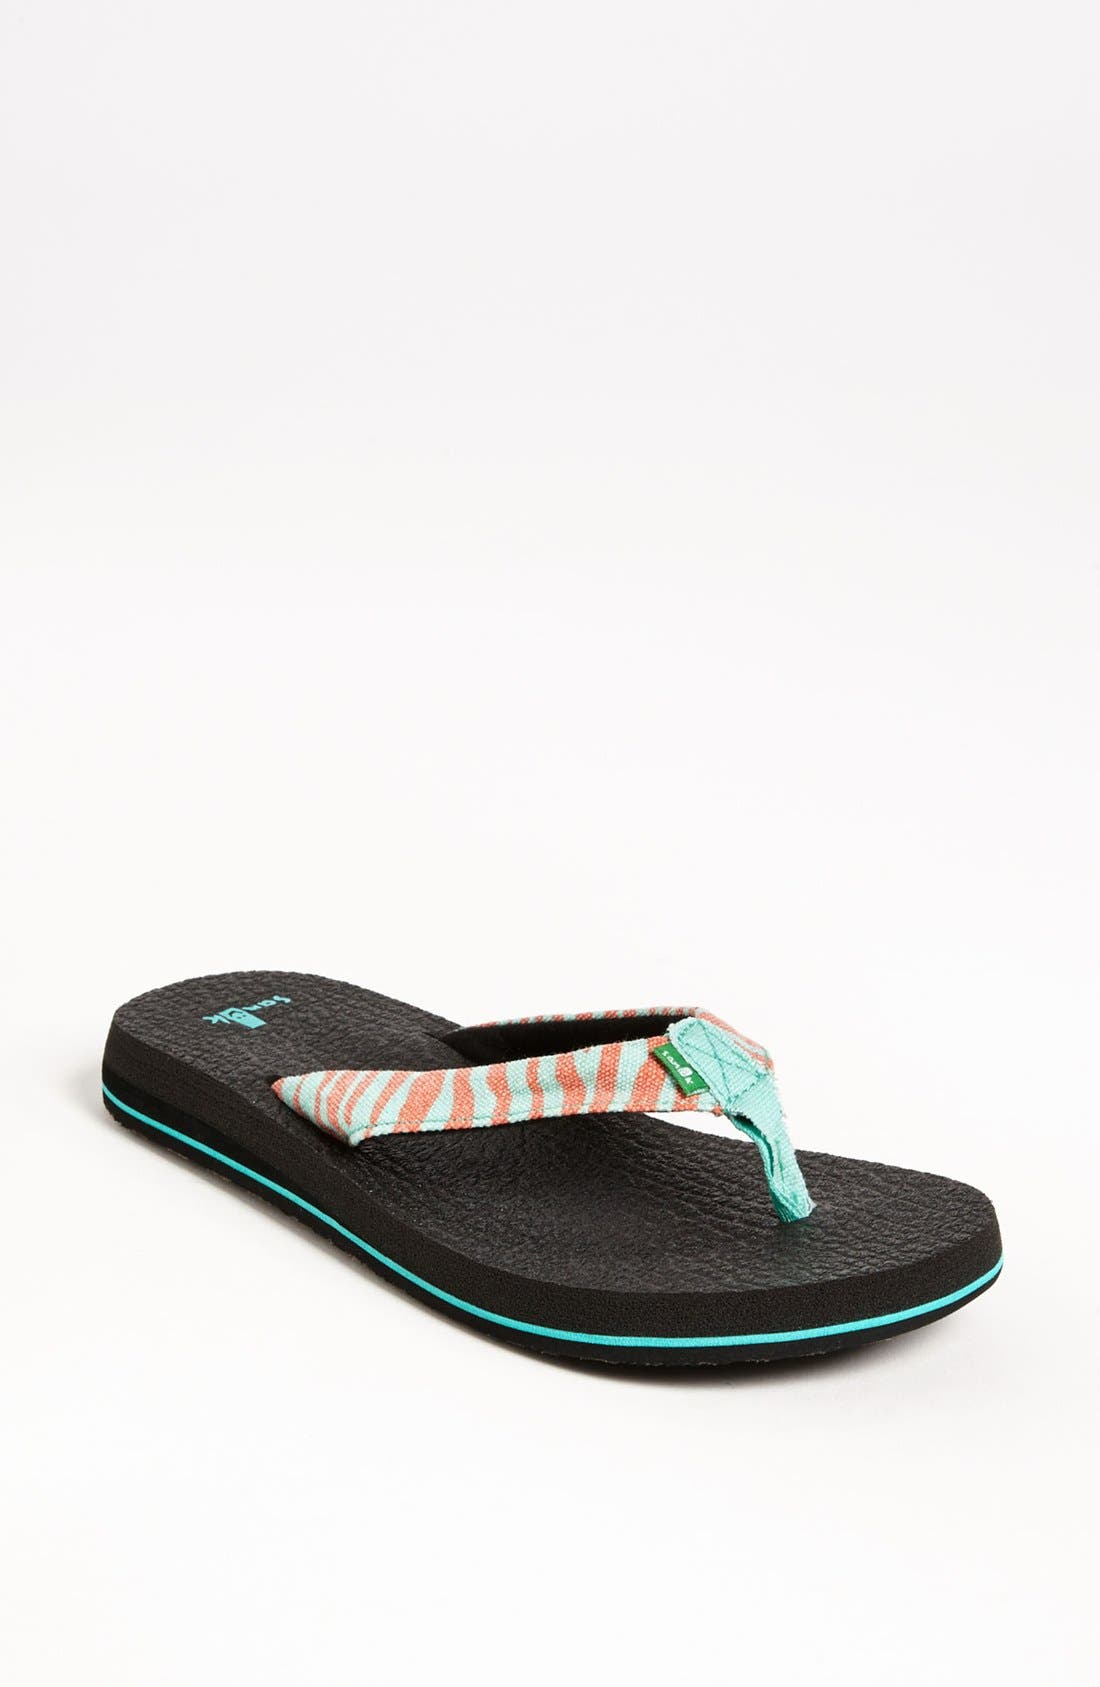 Main Image - Sanuk 'Yoga Wildlife' Flip Flop (Women)